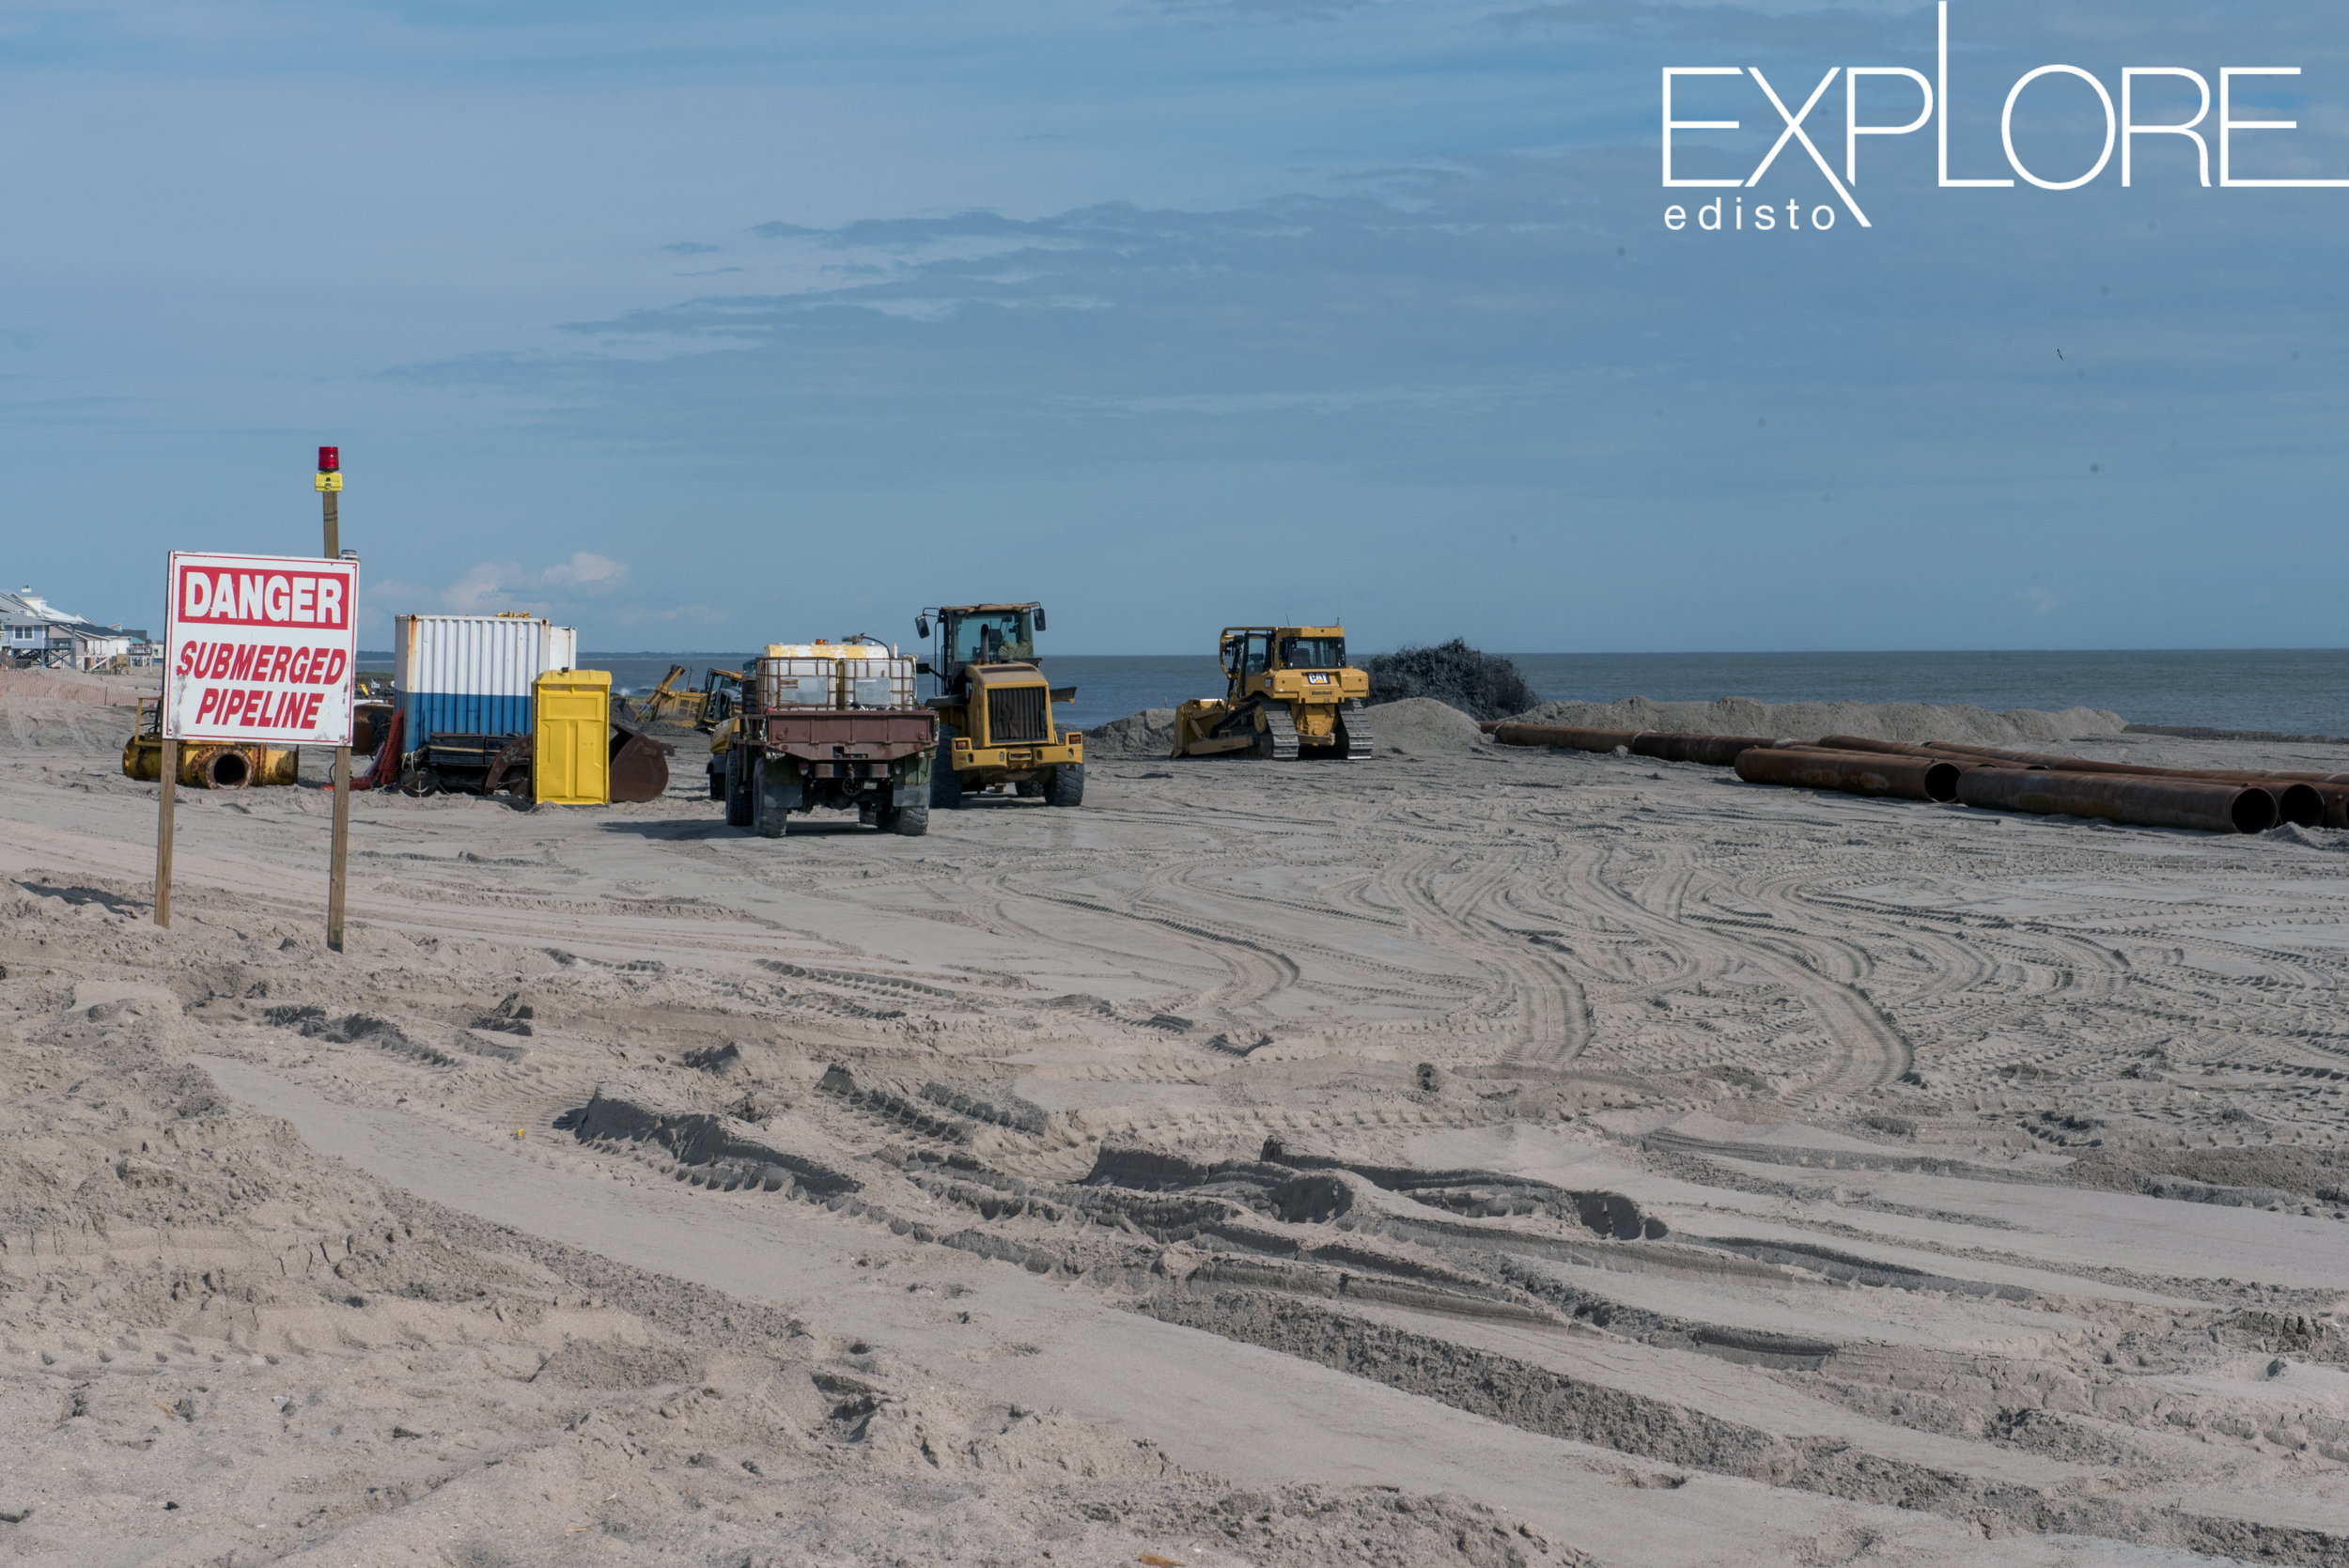 Danger, Submerged Pipeline sign in front of tractors at work on beach renourishment.